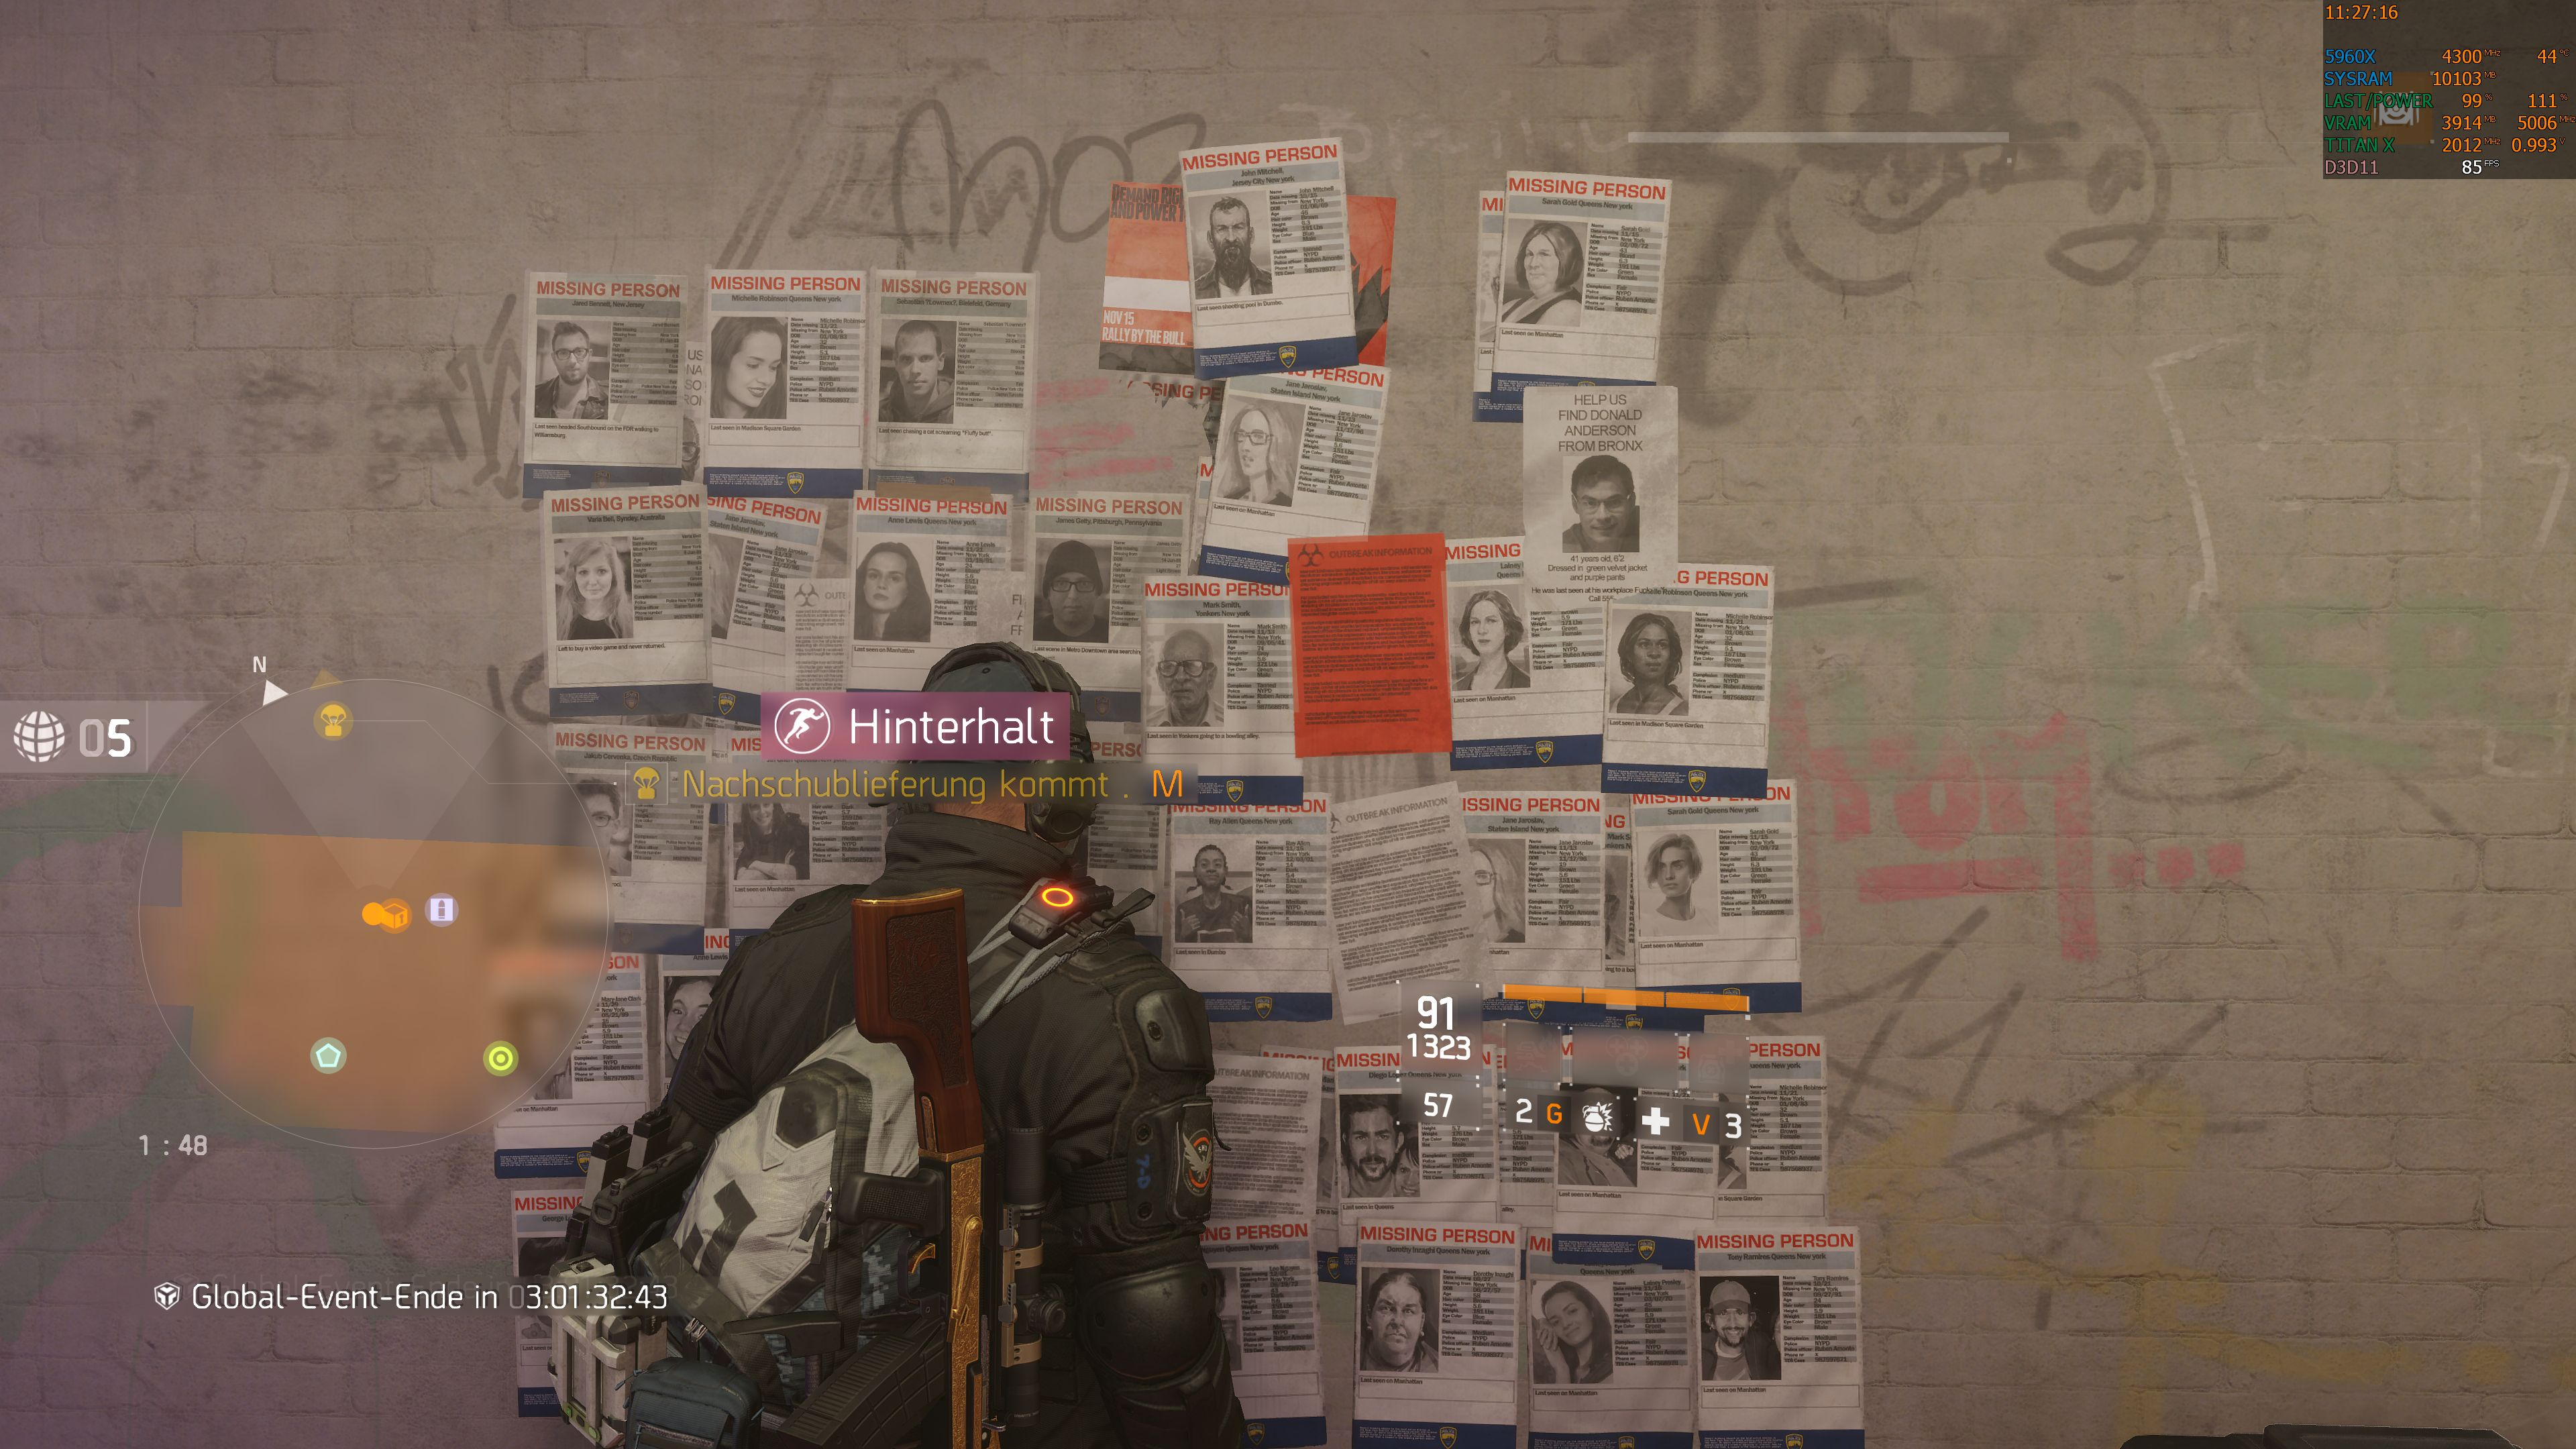 thedivision_2018_01_2mps8x.jpg